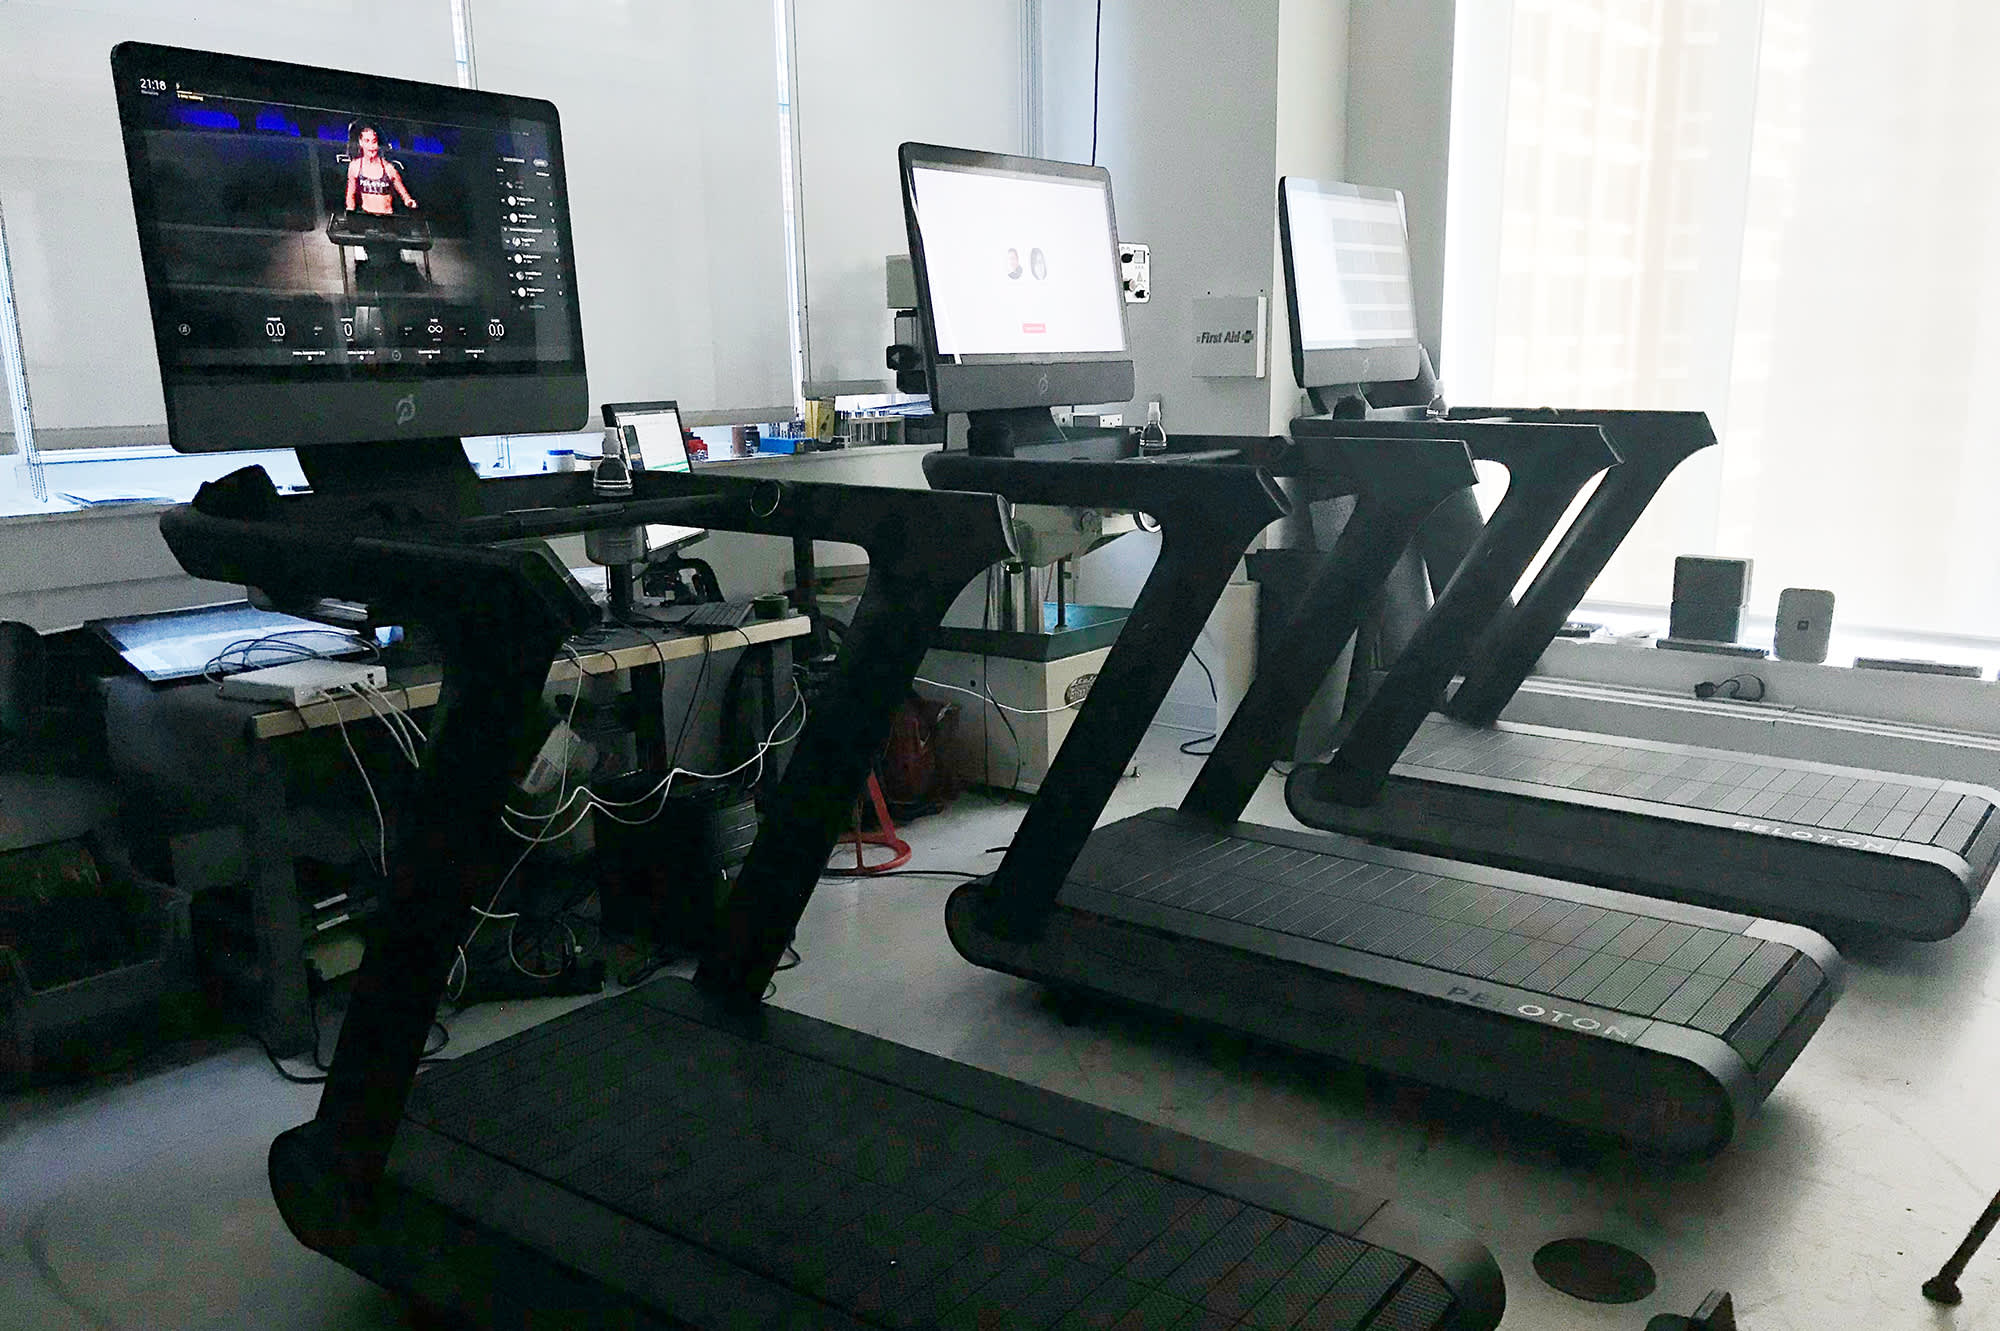 Peloton delays May launch of its less expensive treadmill in the U.S. to add safety features